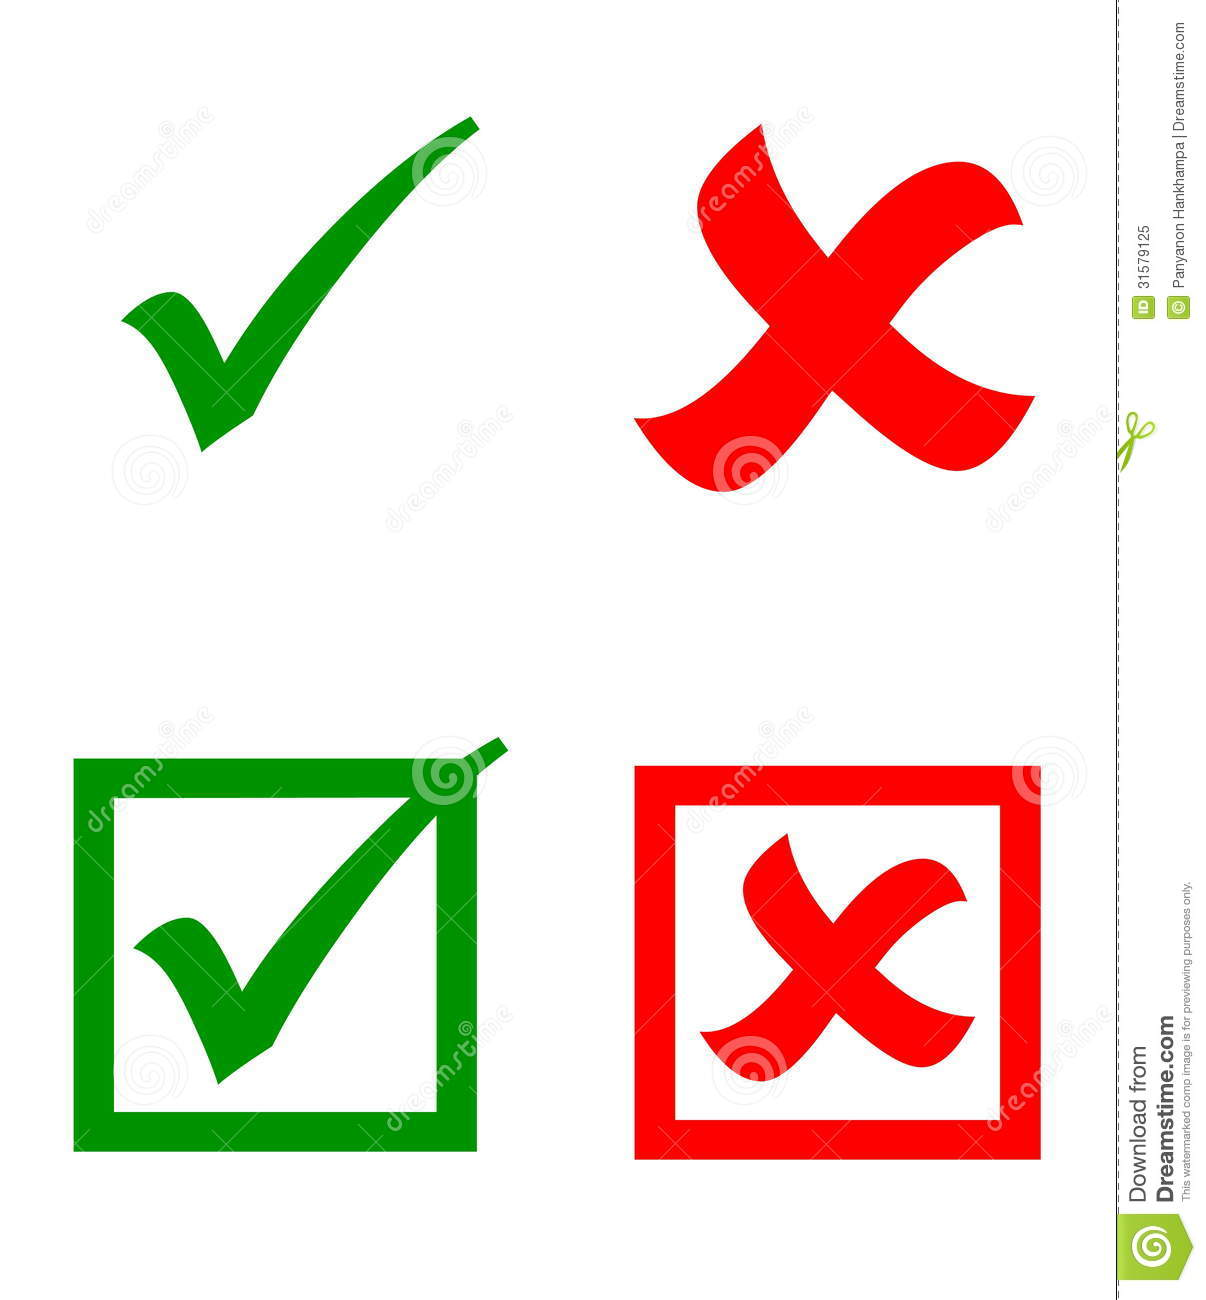 Vector Check Mark Stickers Royalty Free Stock Photo - Image: 31579125: www.dreamstime.com/royalty-free-stock-photo-vector-check-mark...